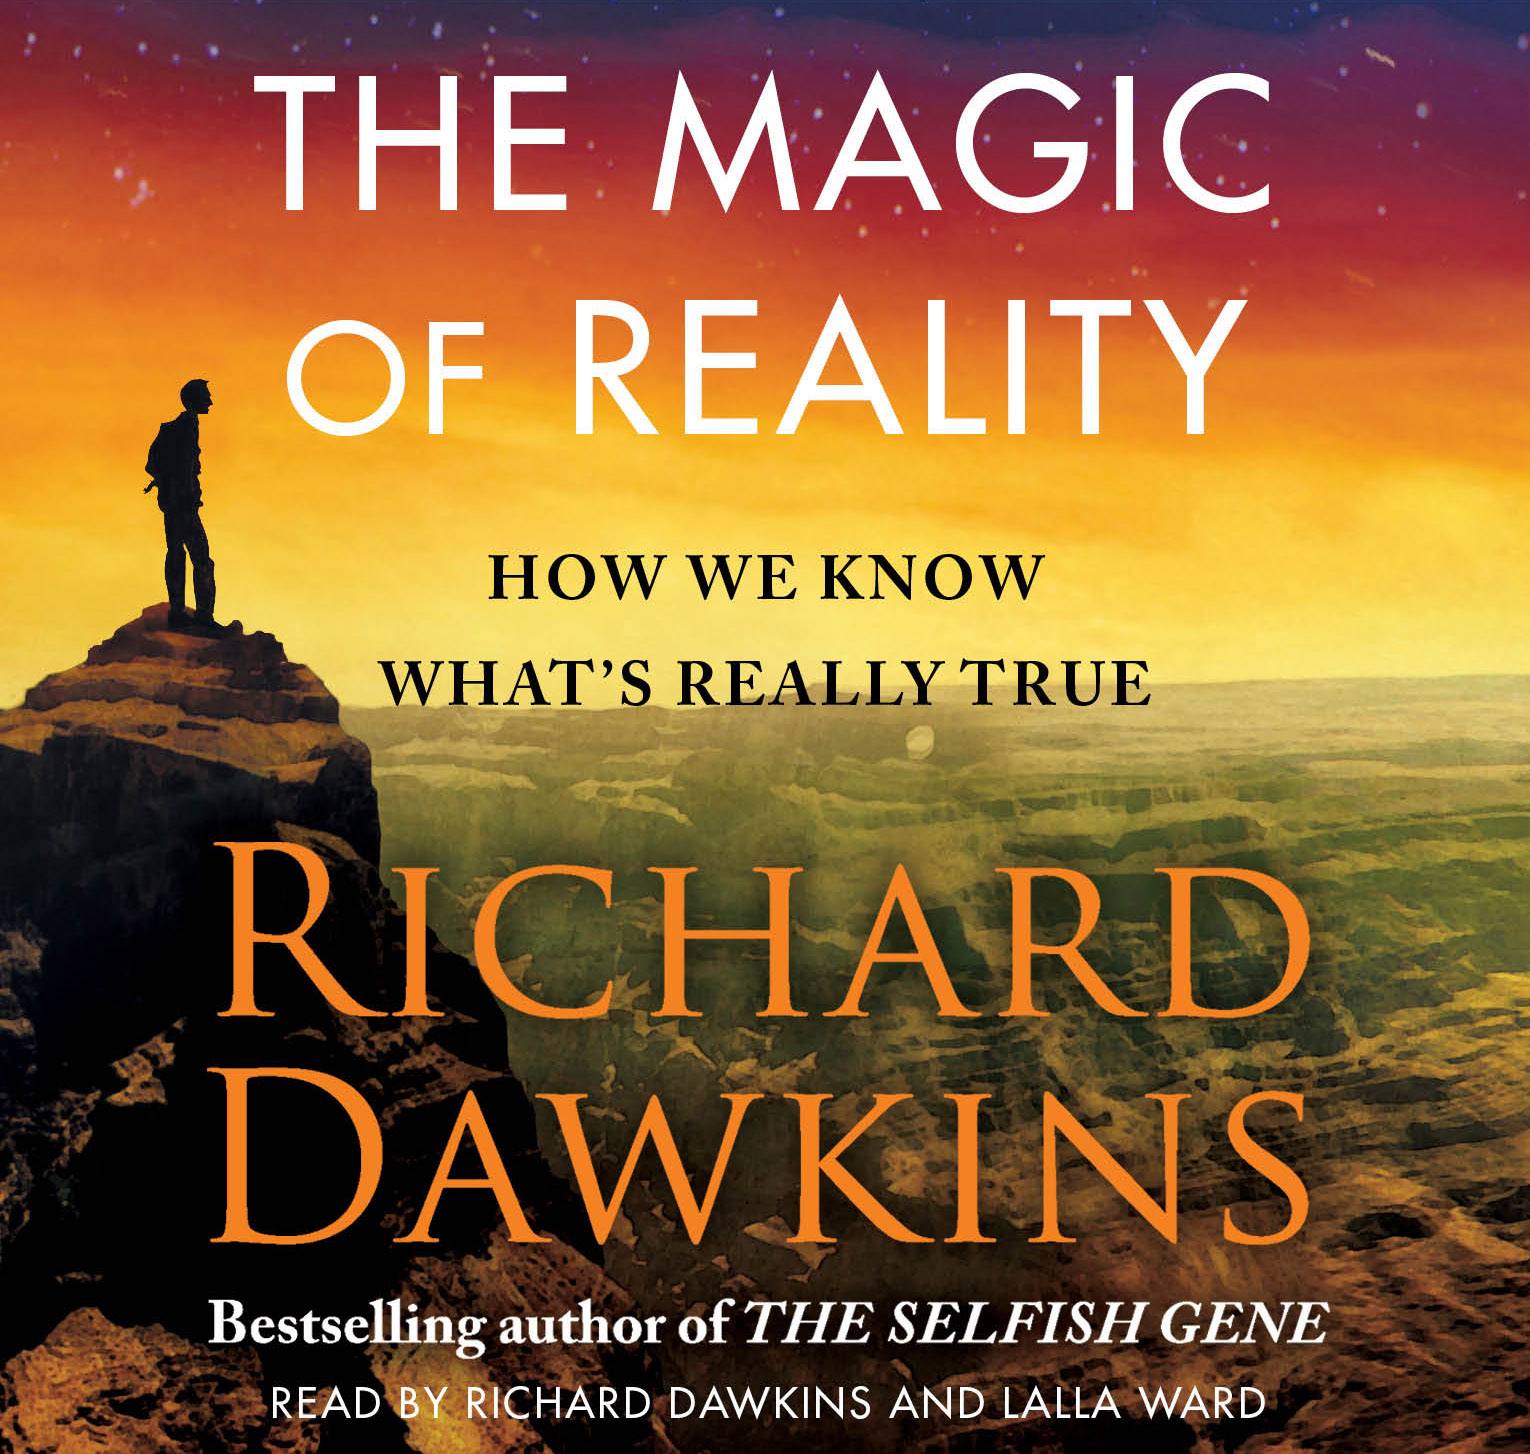 Richard Dawkins – The Magic of Reality